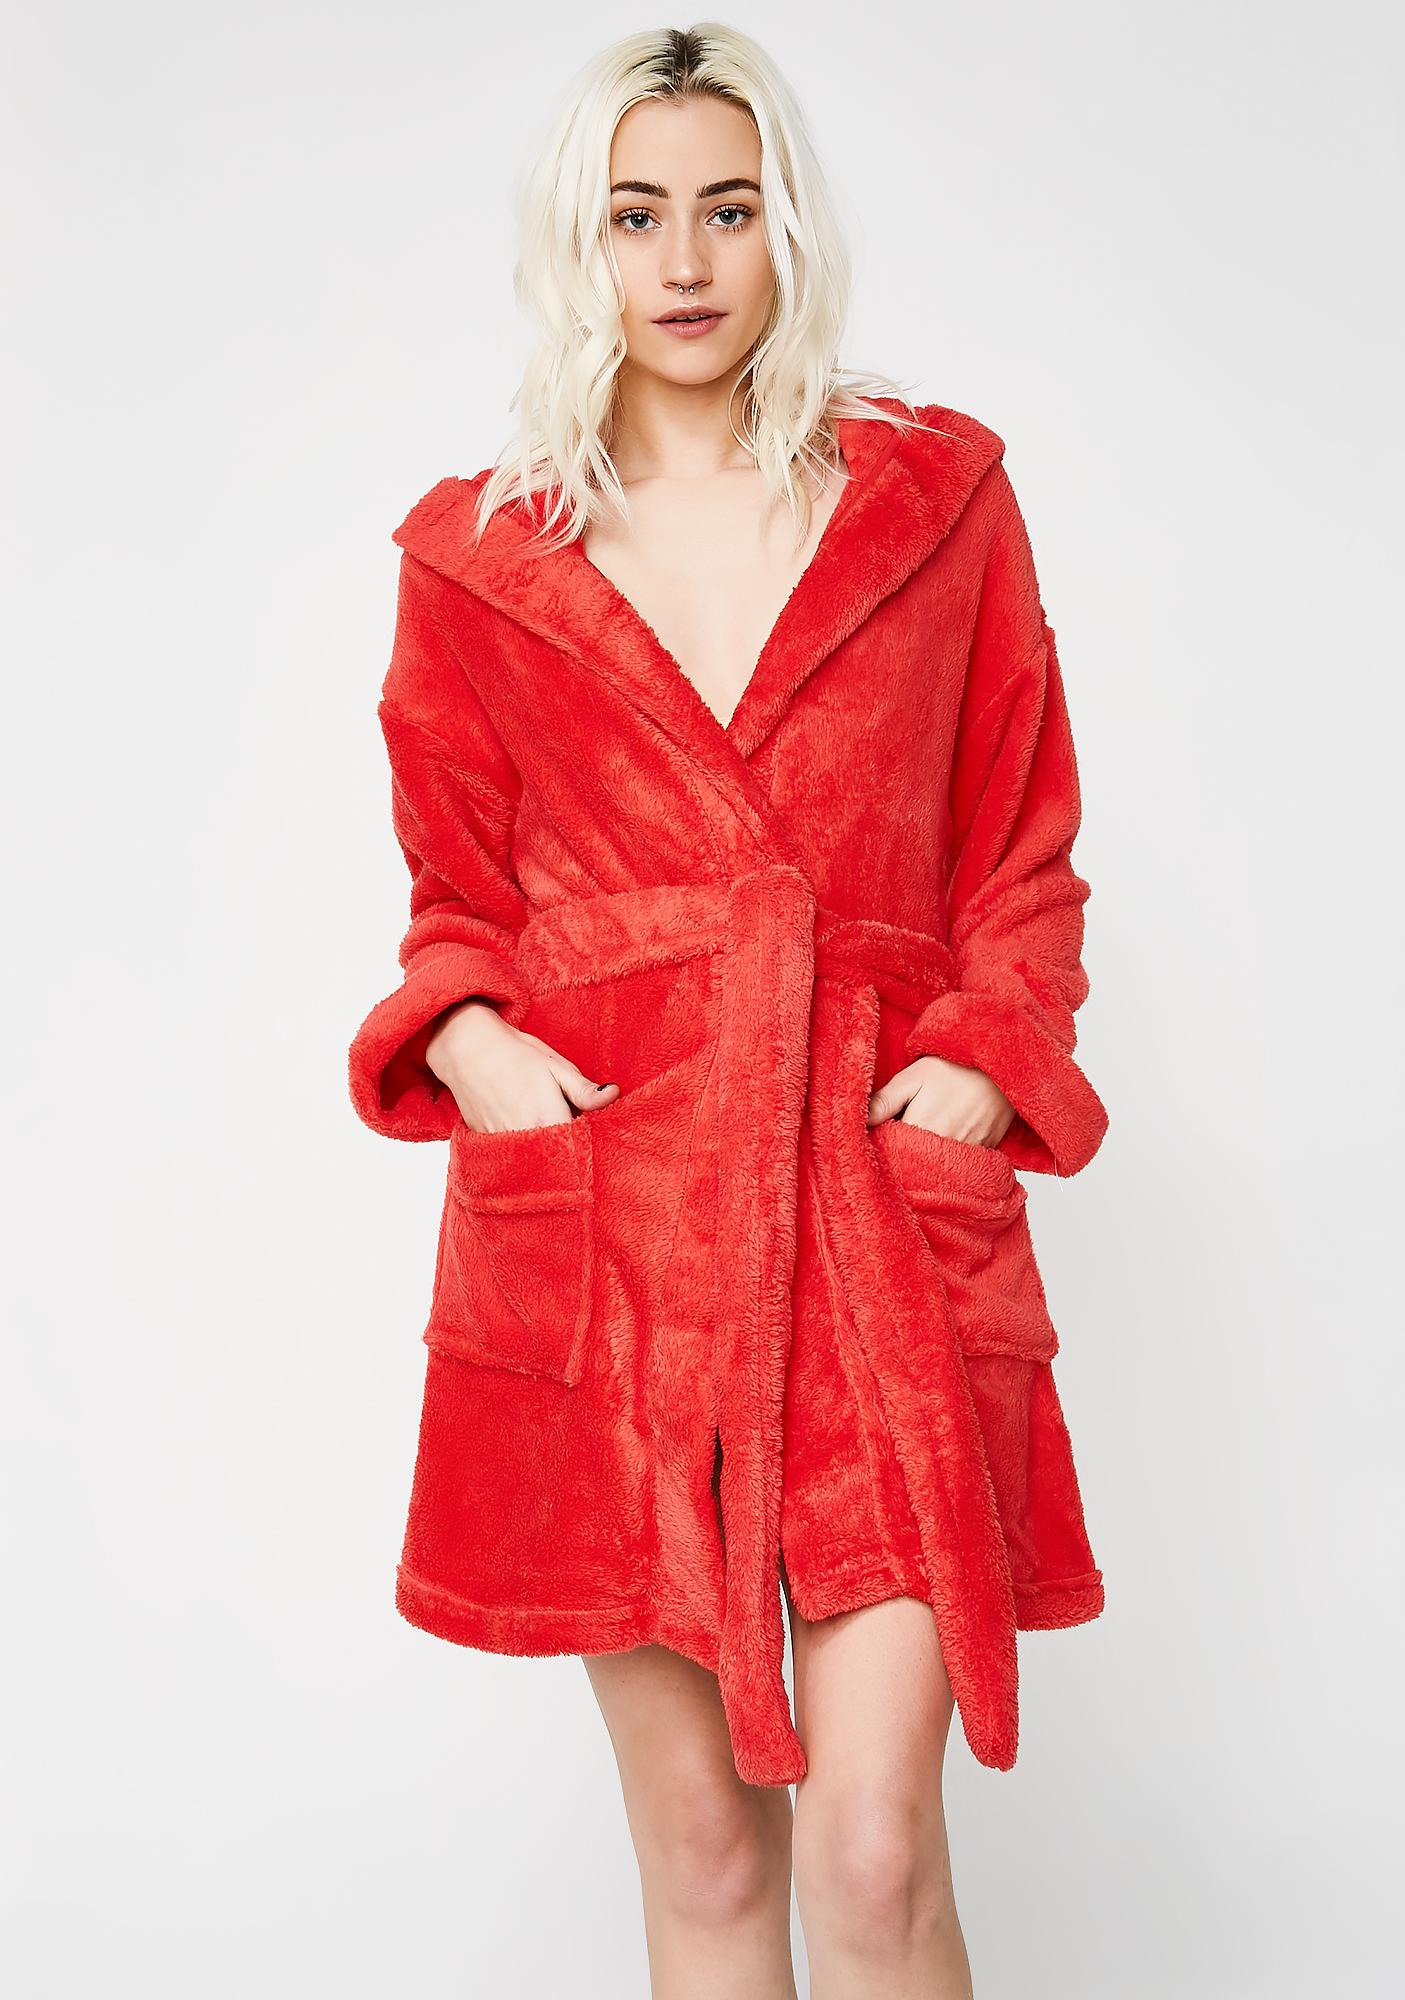 Wildfox Couture Currently Sleeping Robe